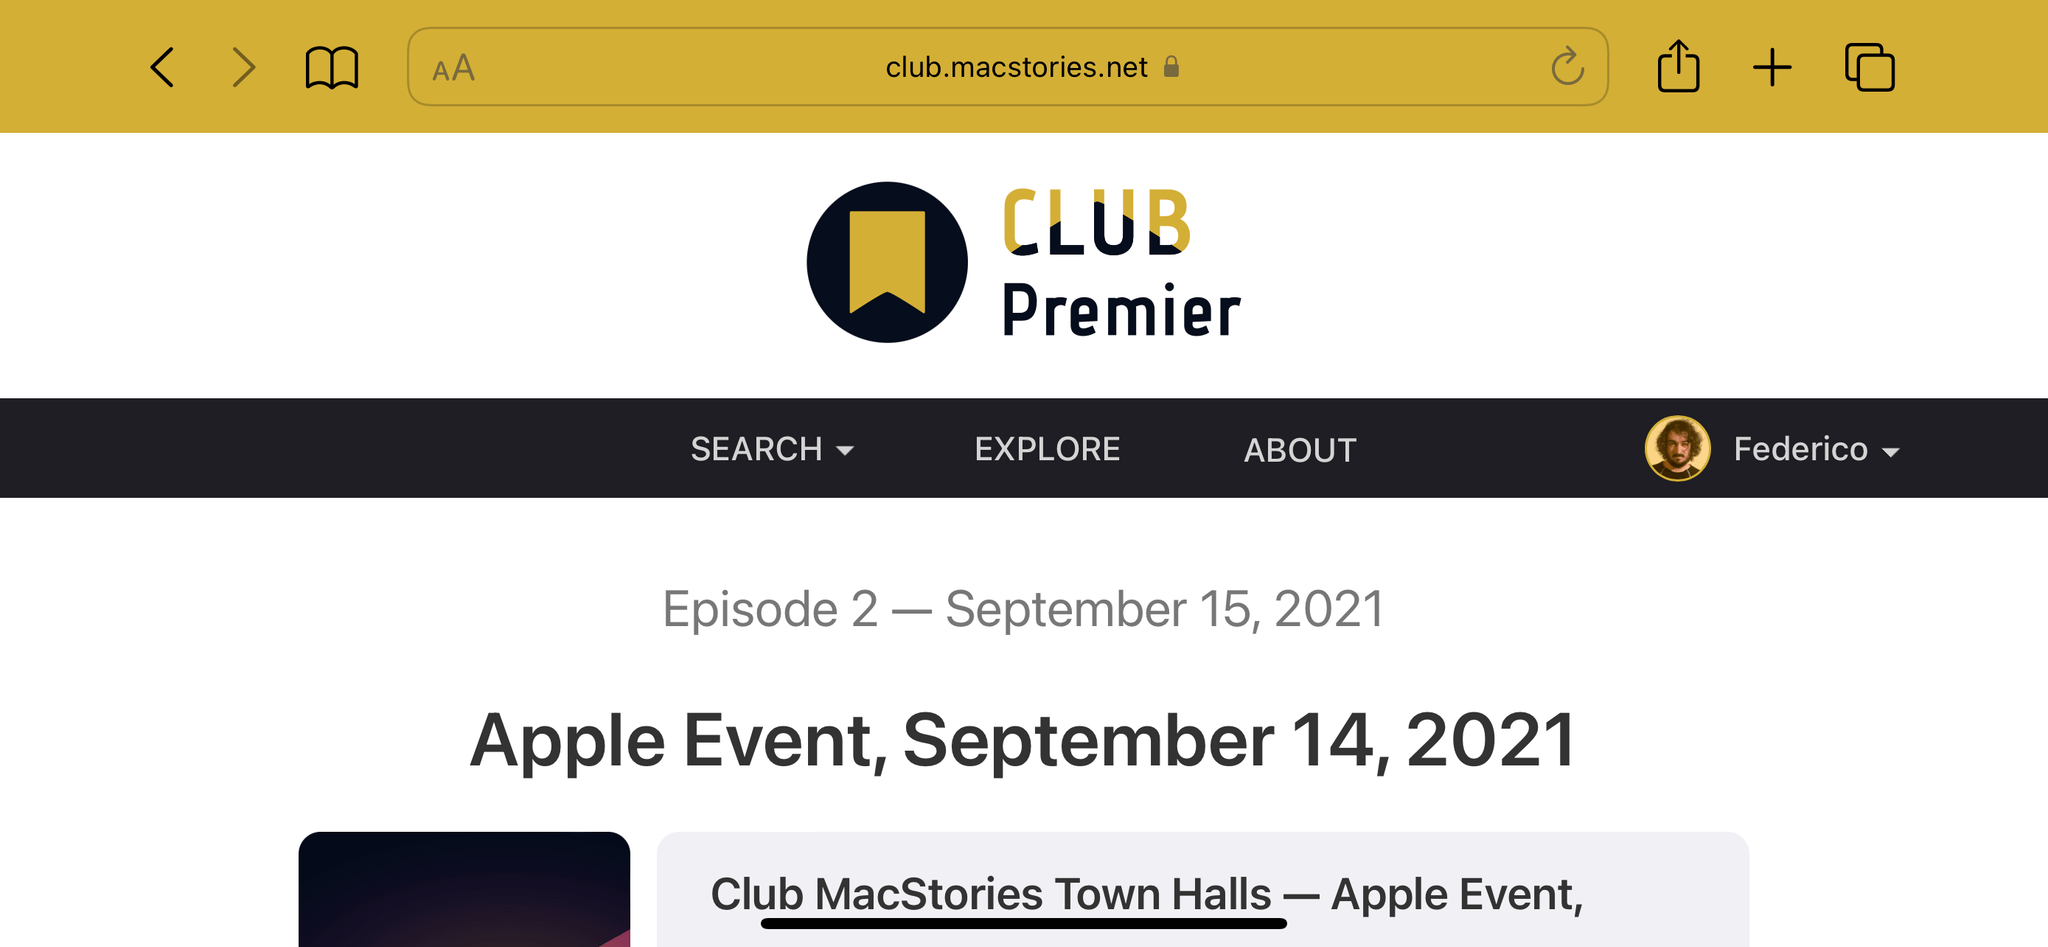 No tab bar in landscape for this iPhone.